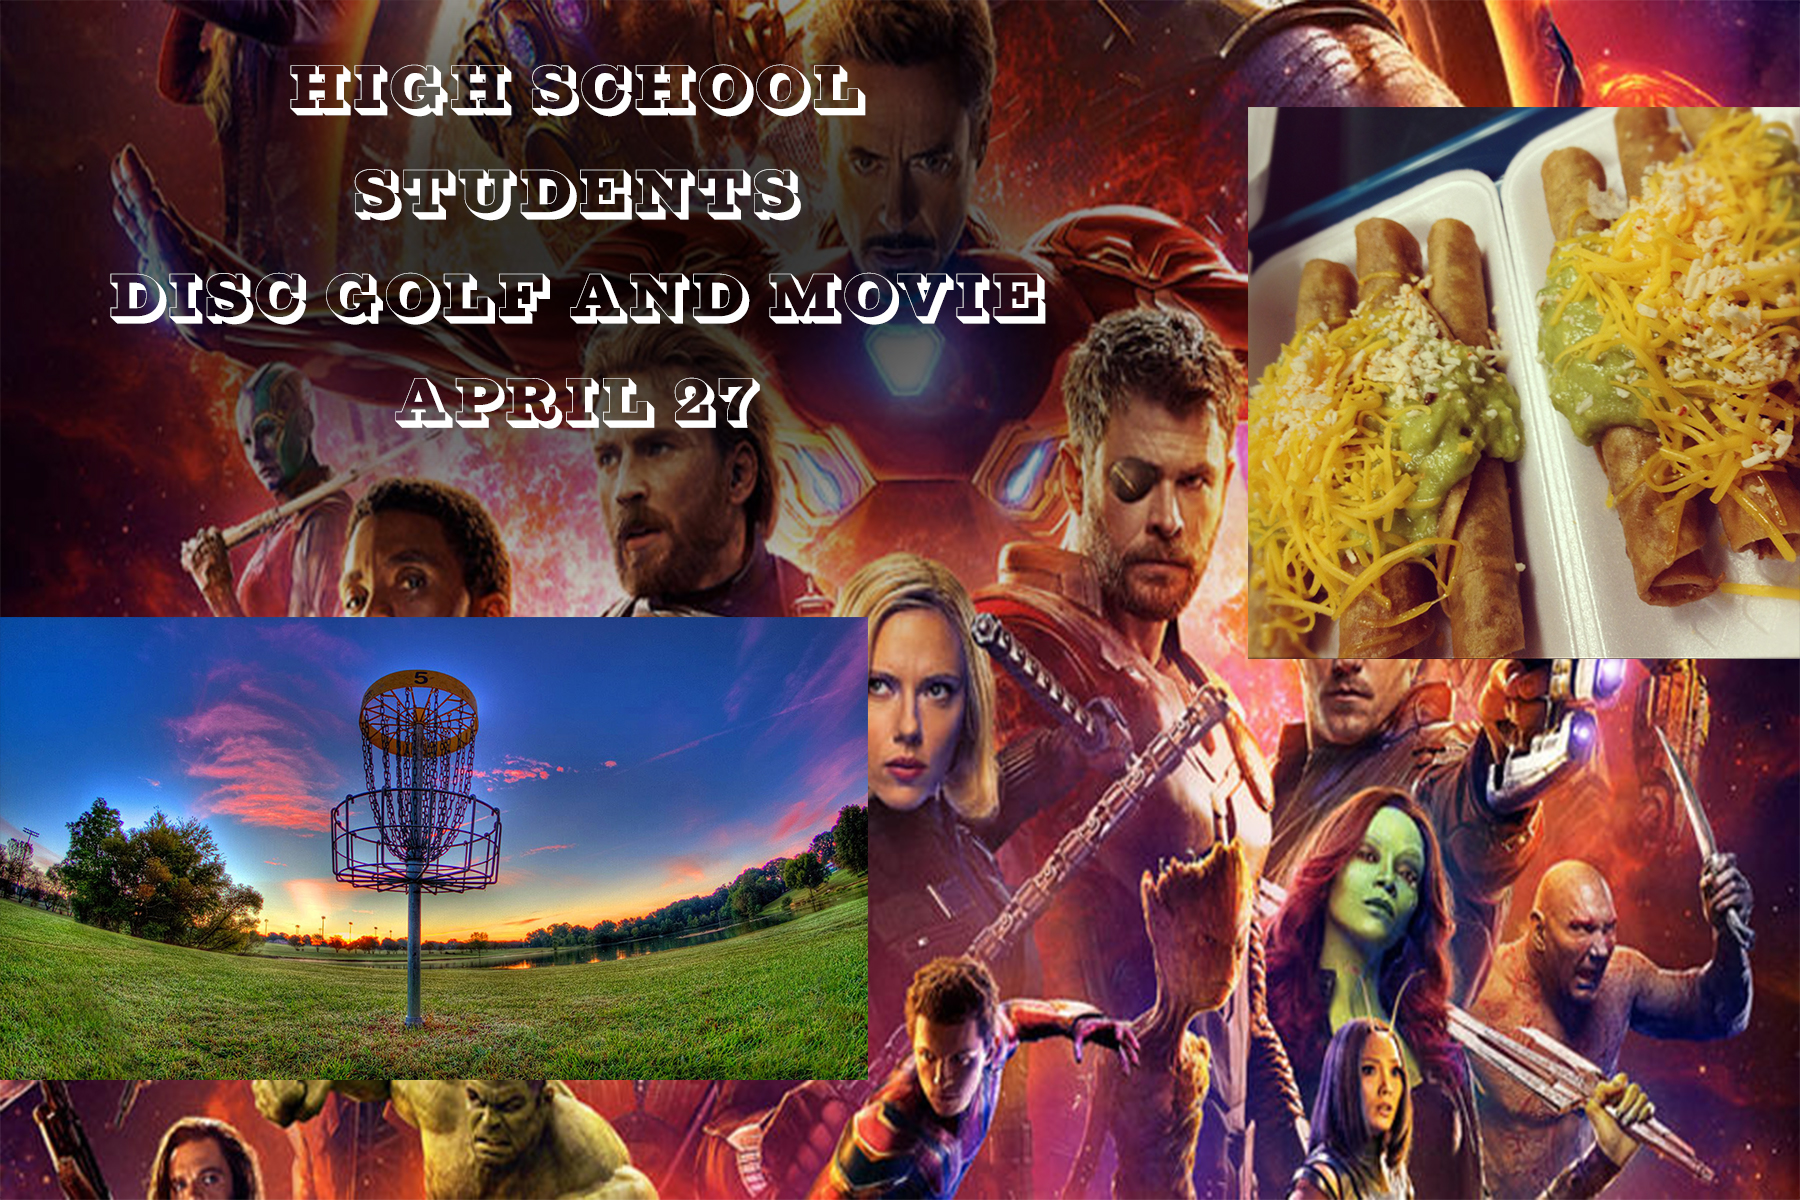 Disc golf and movie graphic